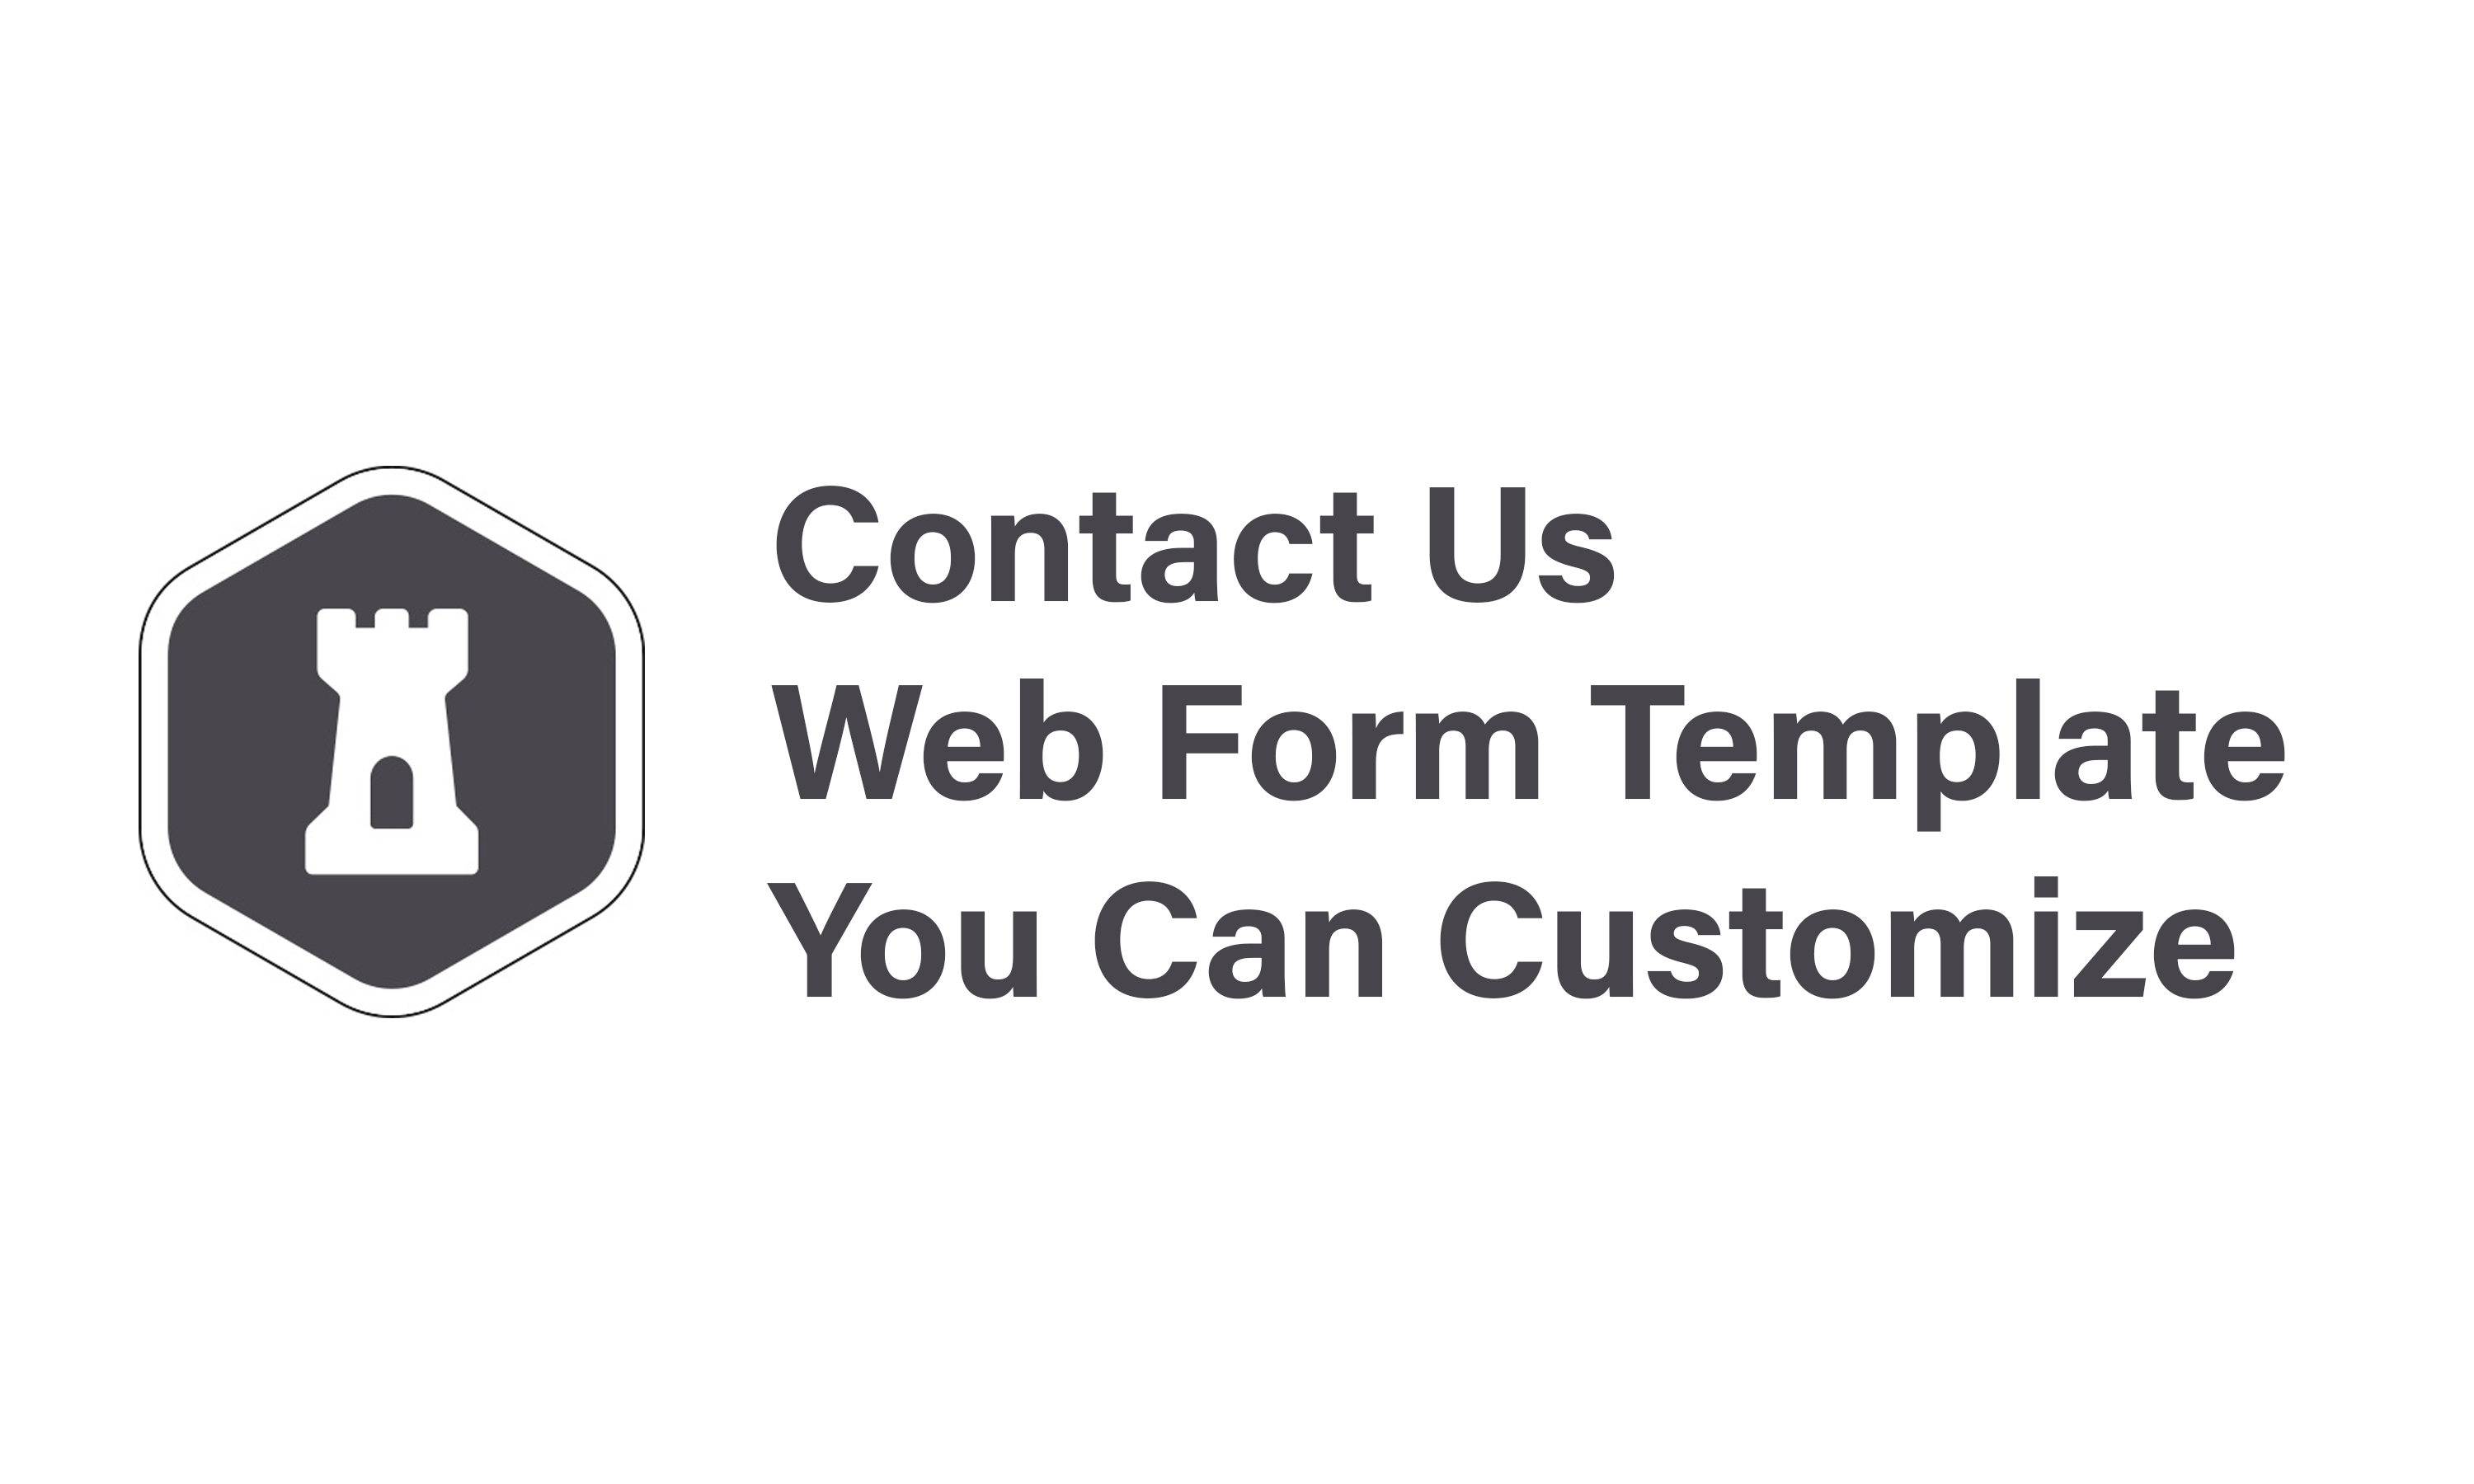 Sample Contact Us Form Template You Can Customize